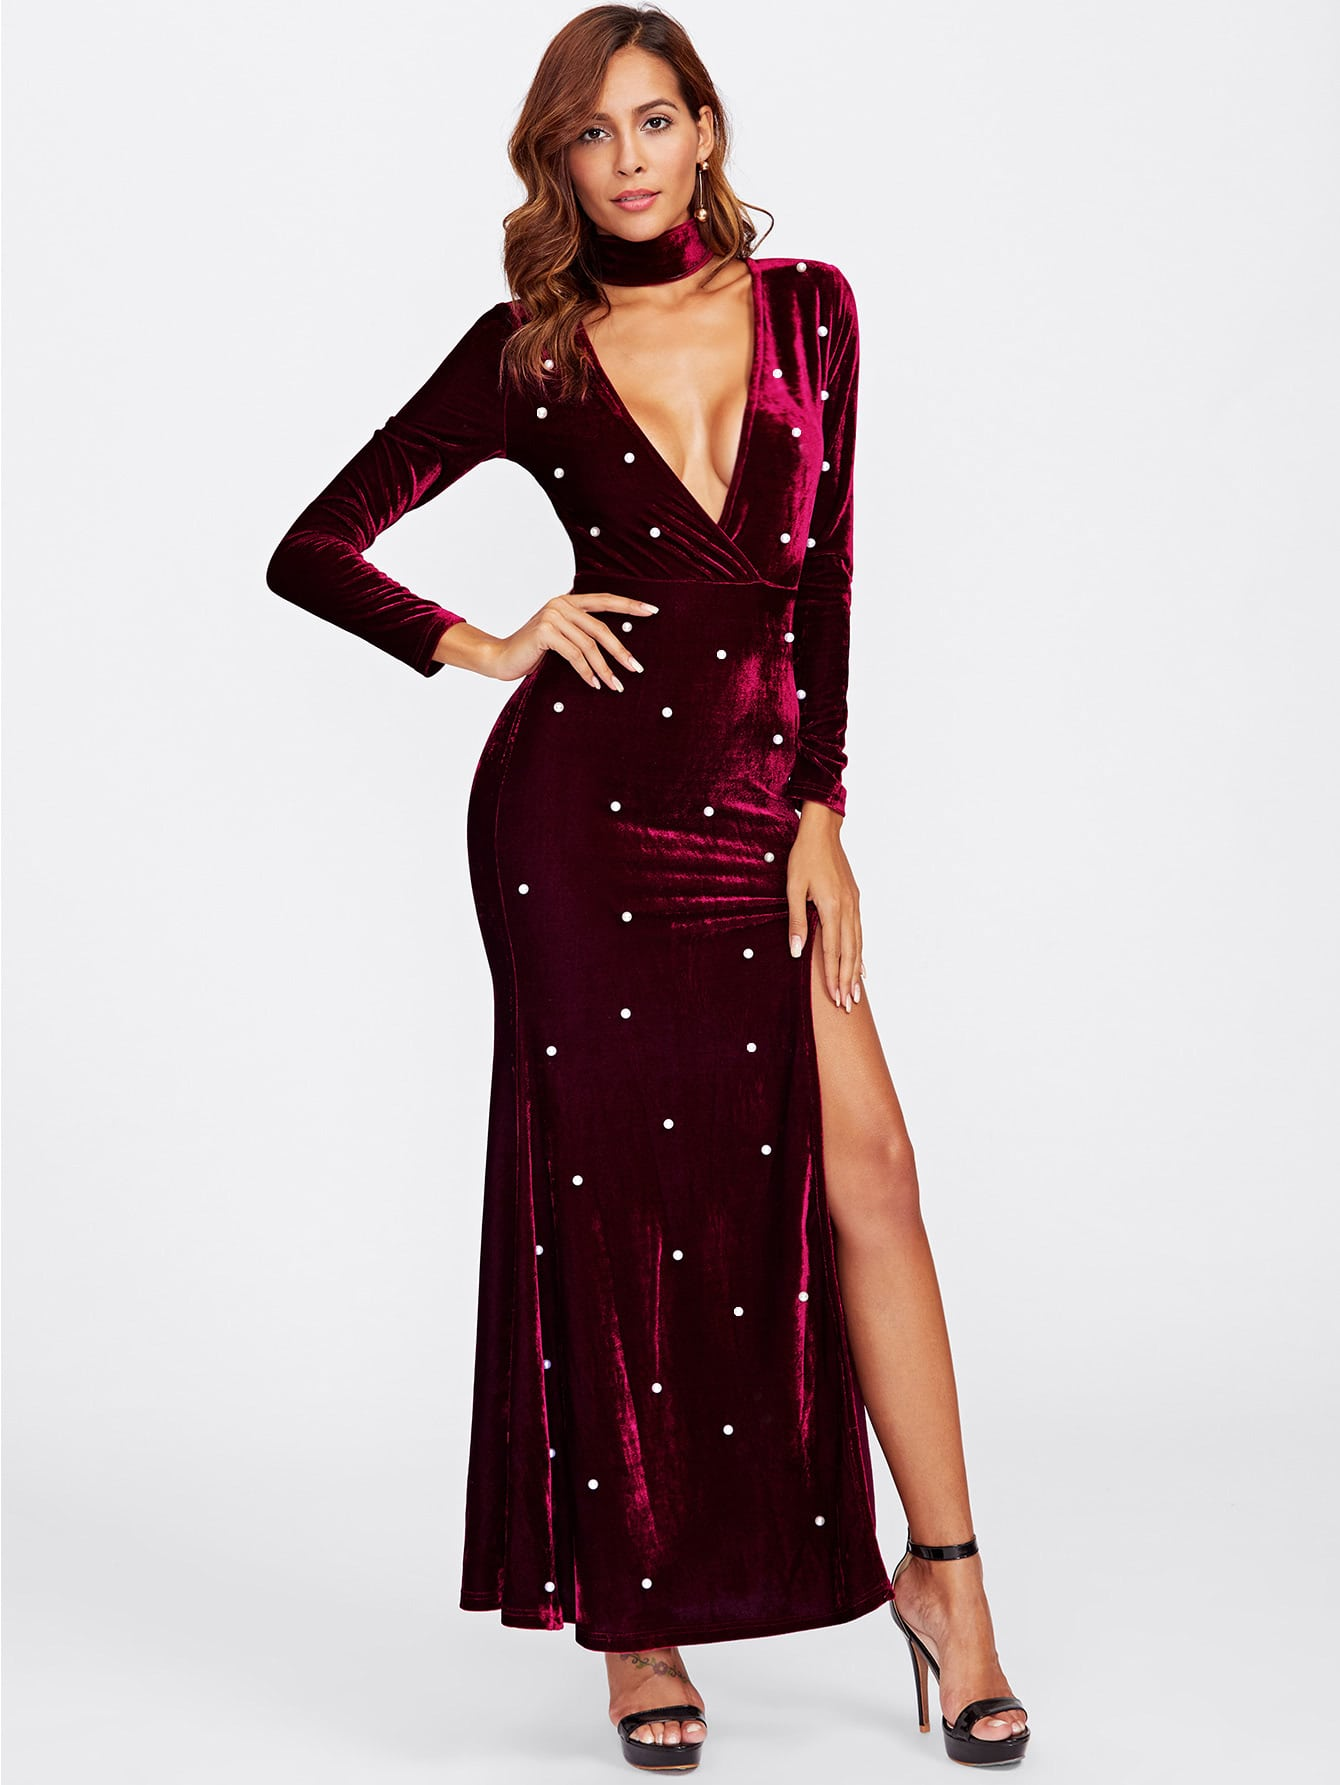 High Slit Plunging Velvet Dress With Neck Tie лампочка филипс 007054 b1s 35w e1 04j dot 9285 141 294